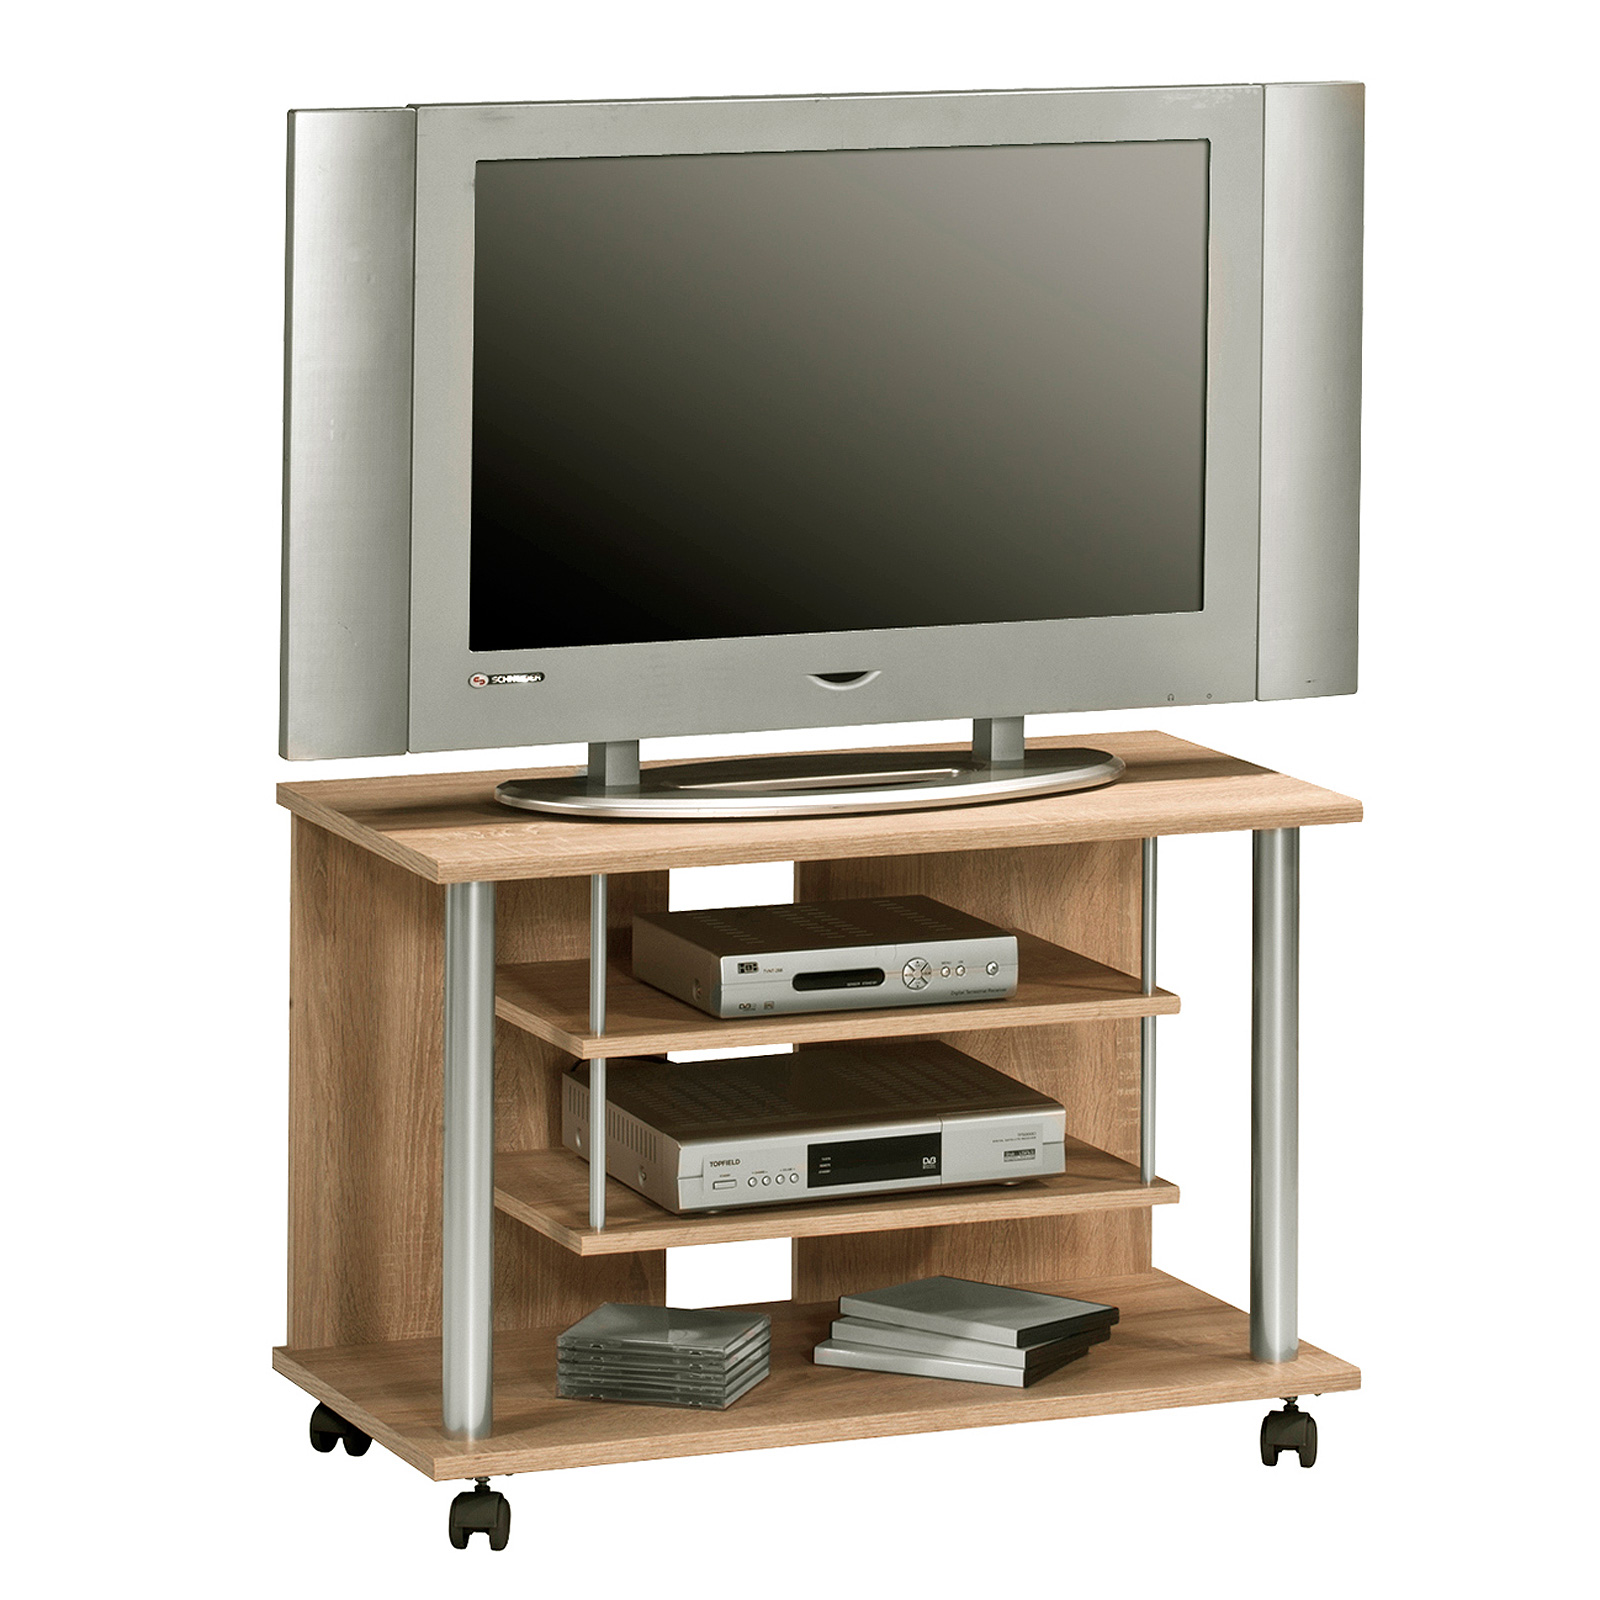 tv rack maja 1898 tv board tv schrank mediam bel als farbauswahl mit rollen ebay. Black Bedroom Furniture Sets. Home Design Ideas